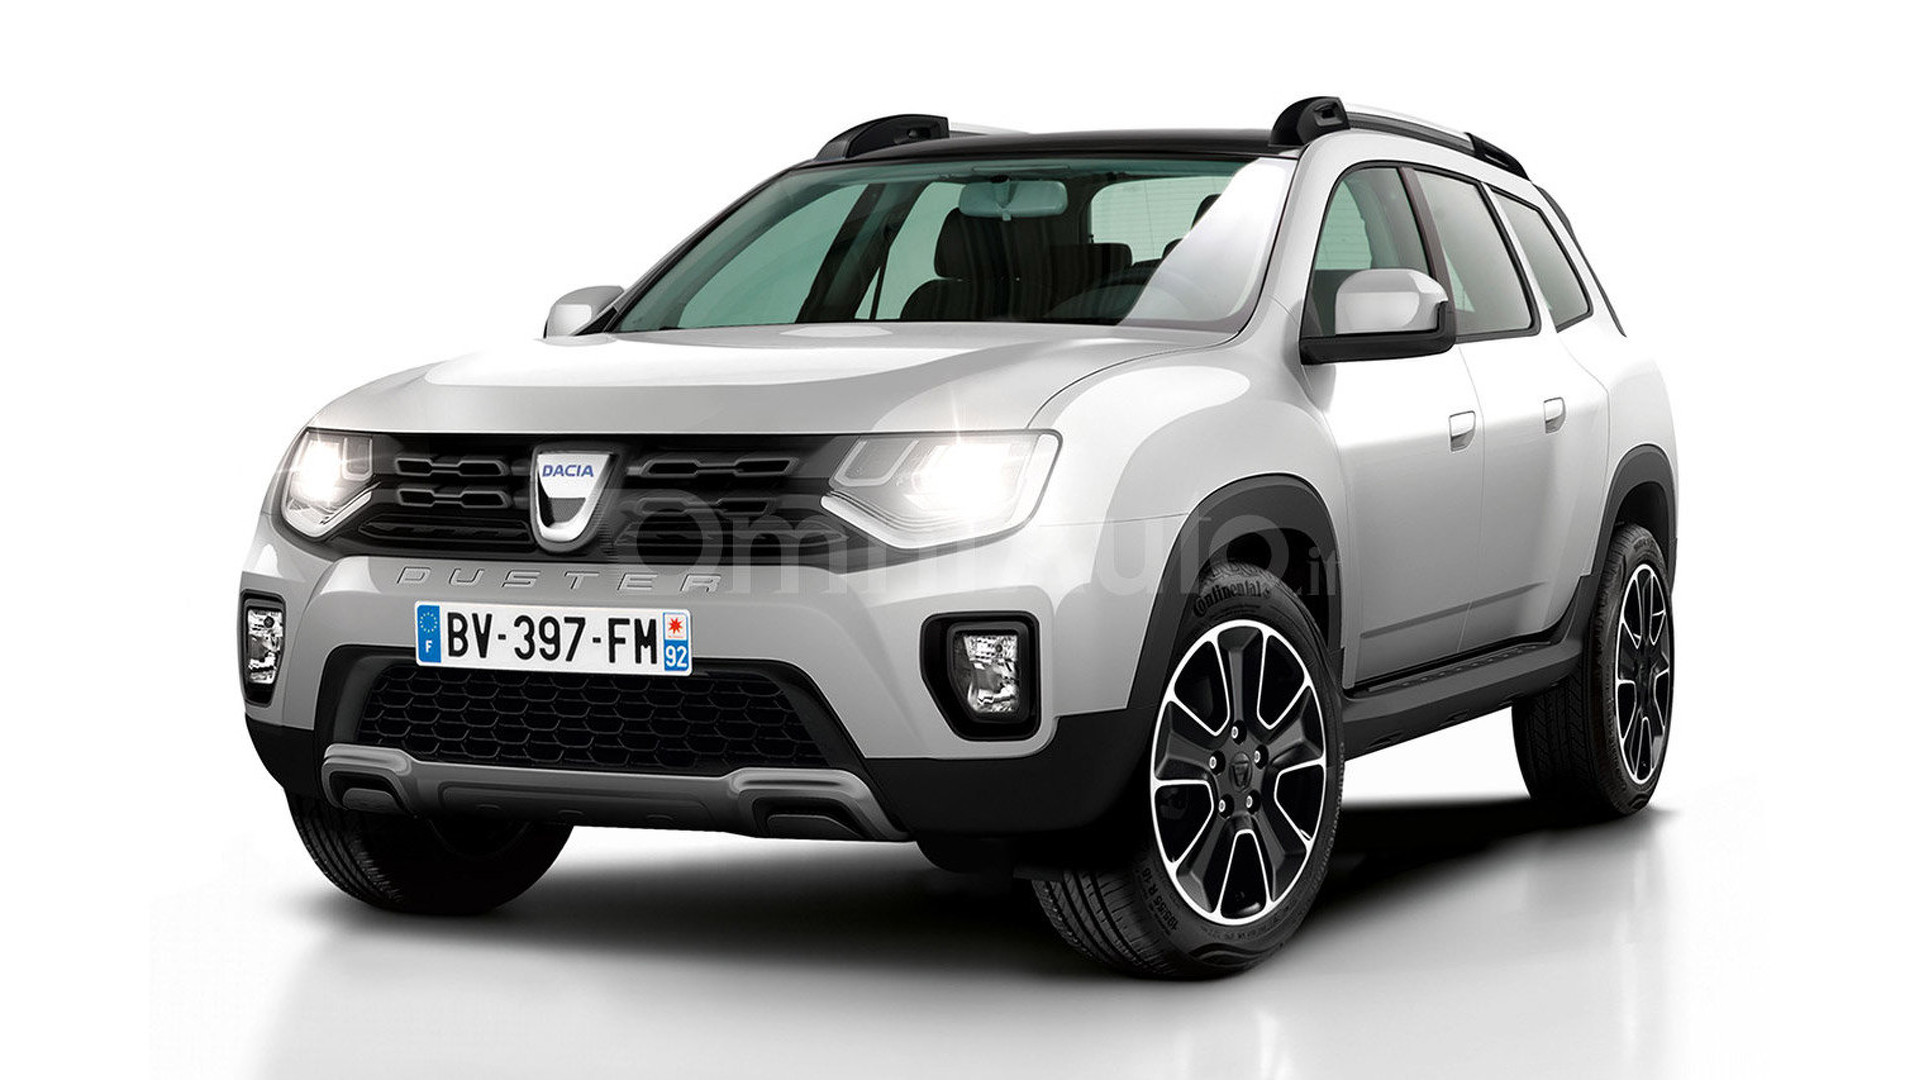 2017 dacia duster gets rendered - Dacia duster 2017 interior ...